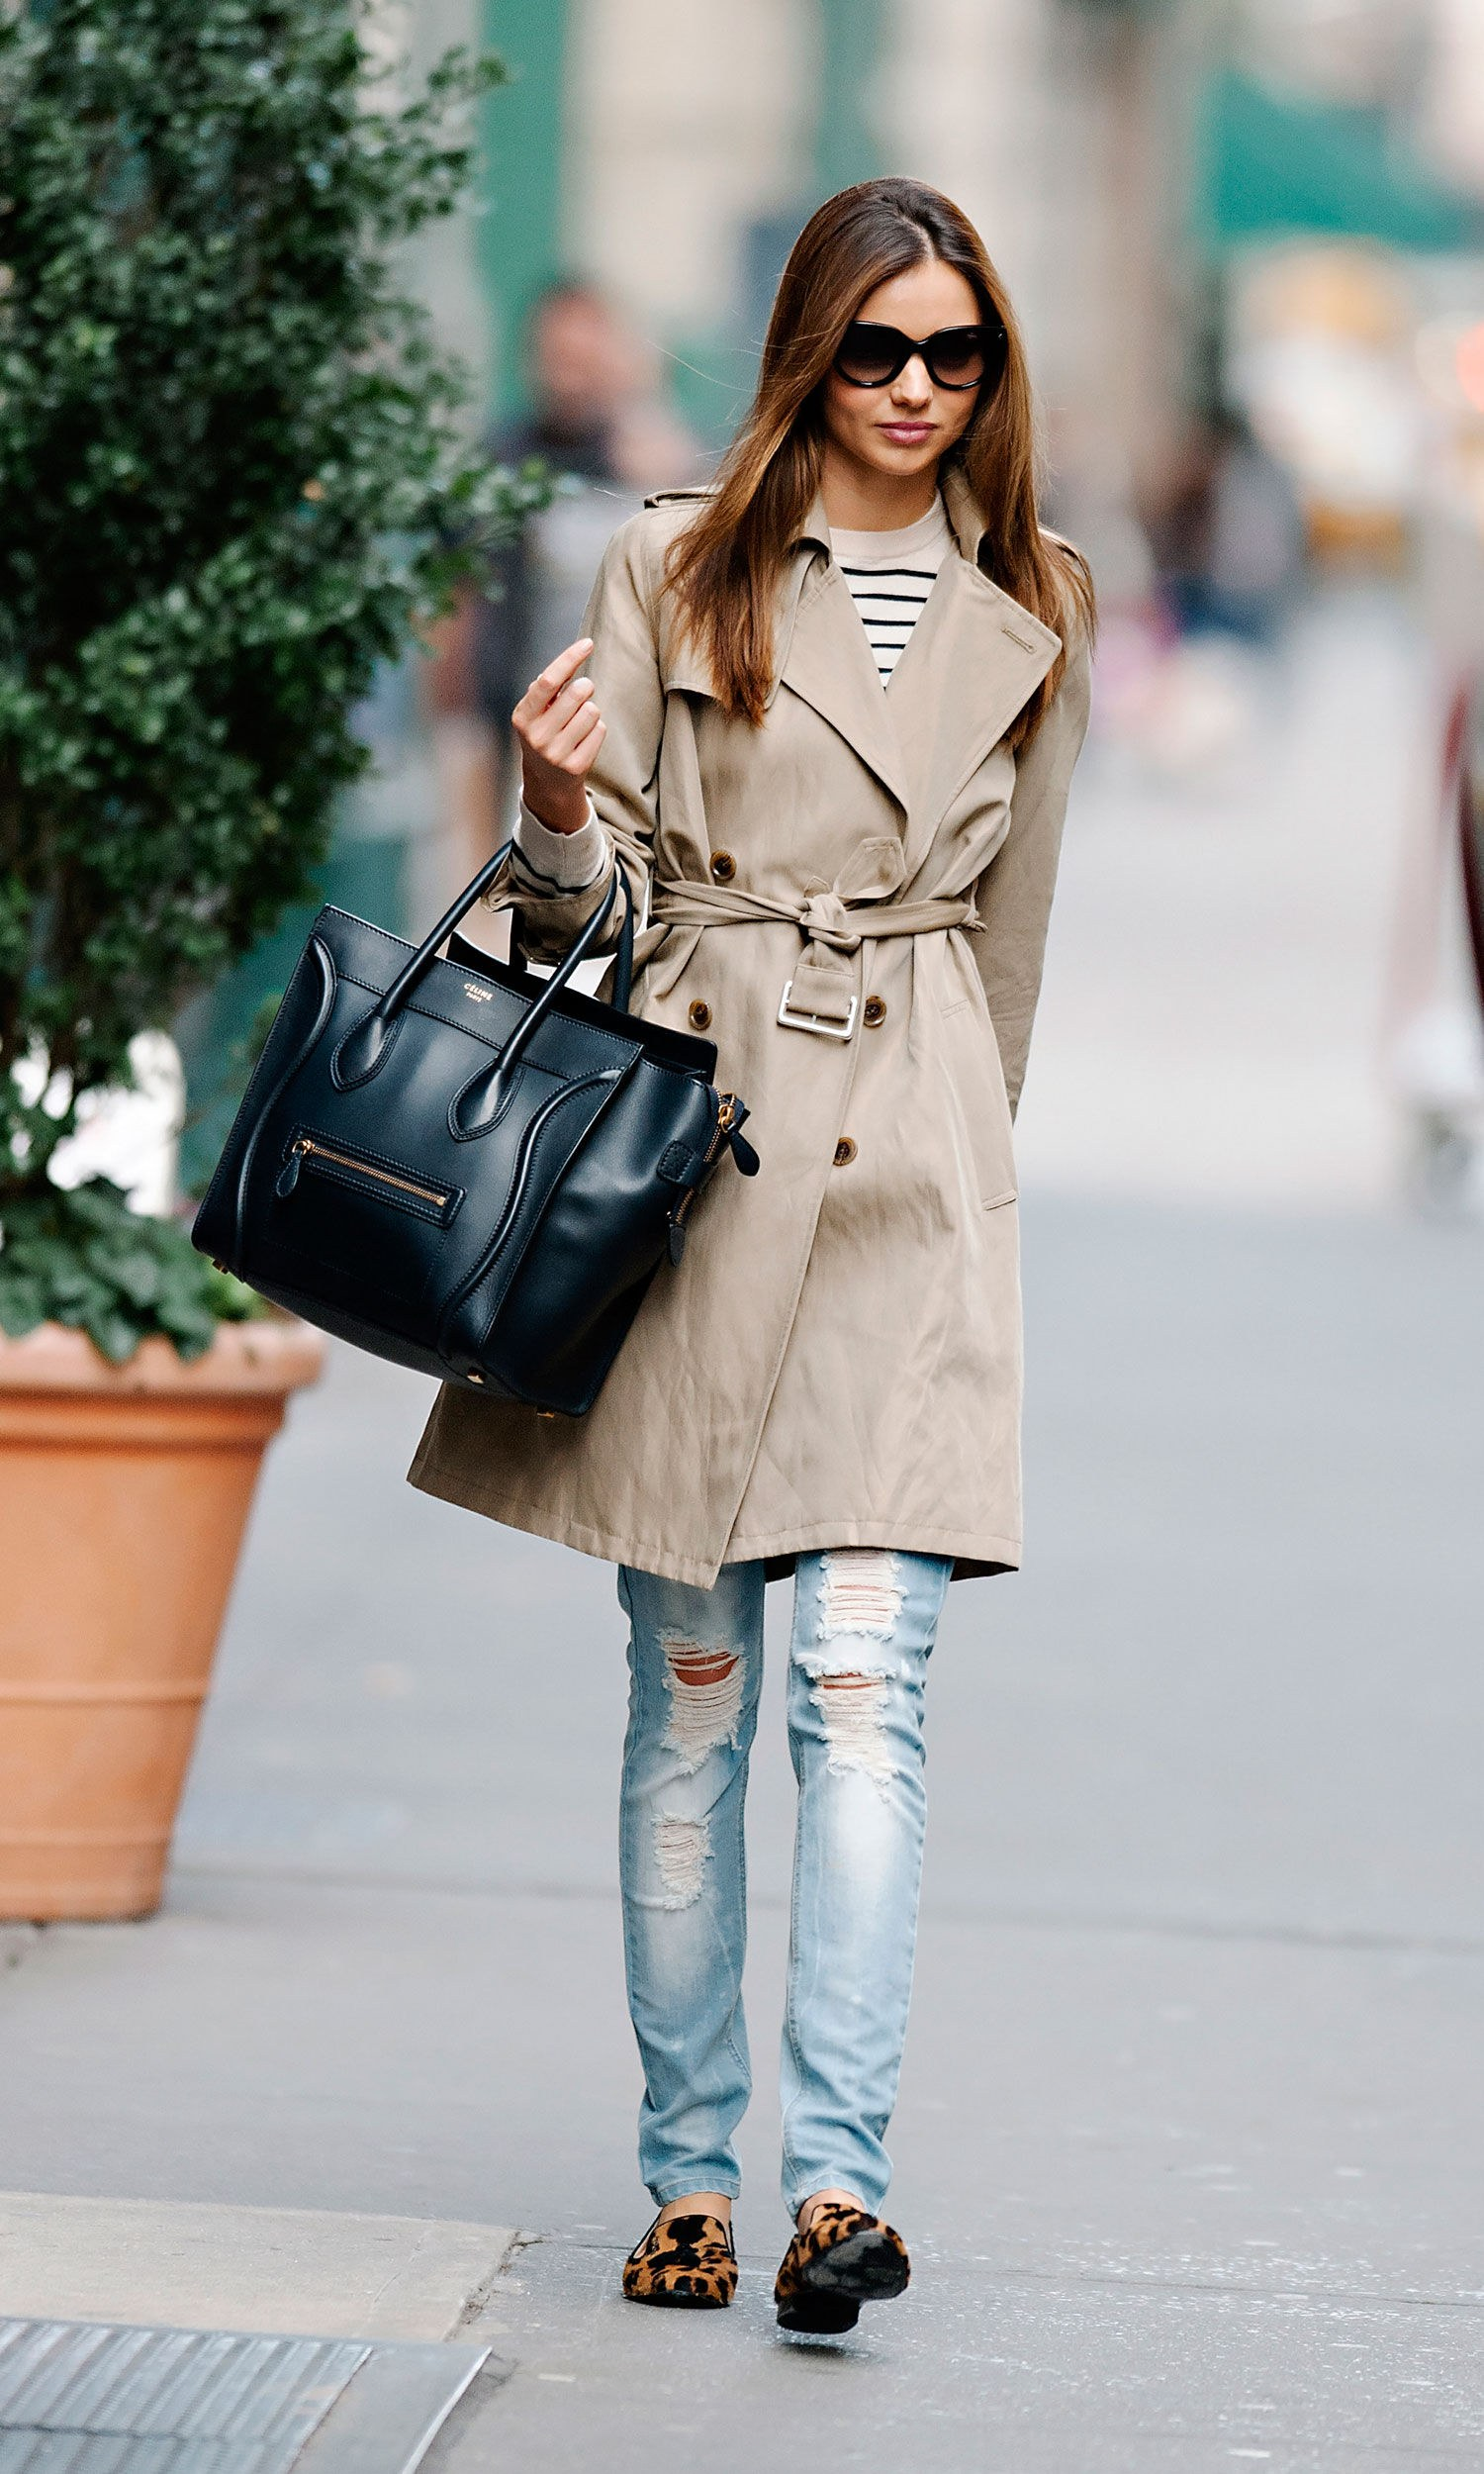 Miranda-kerr-street-style-personal-style-trench-Genius-Outfit-ideas-to-steal-from-Street-Style-Glamour-Vanessa-Wu